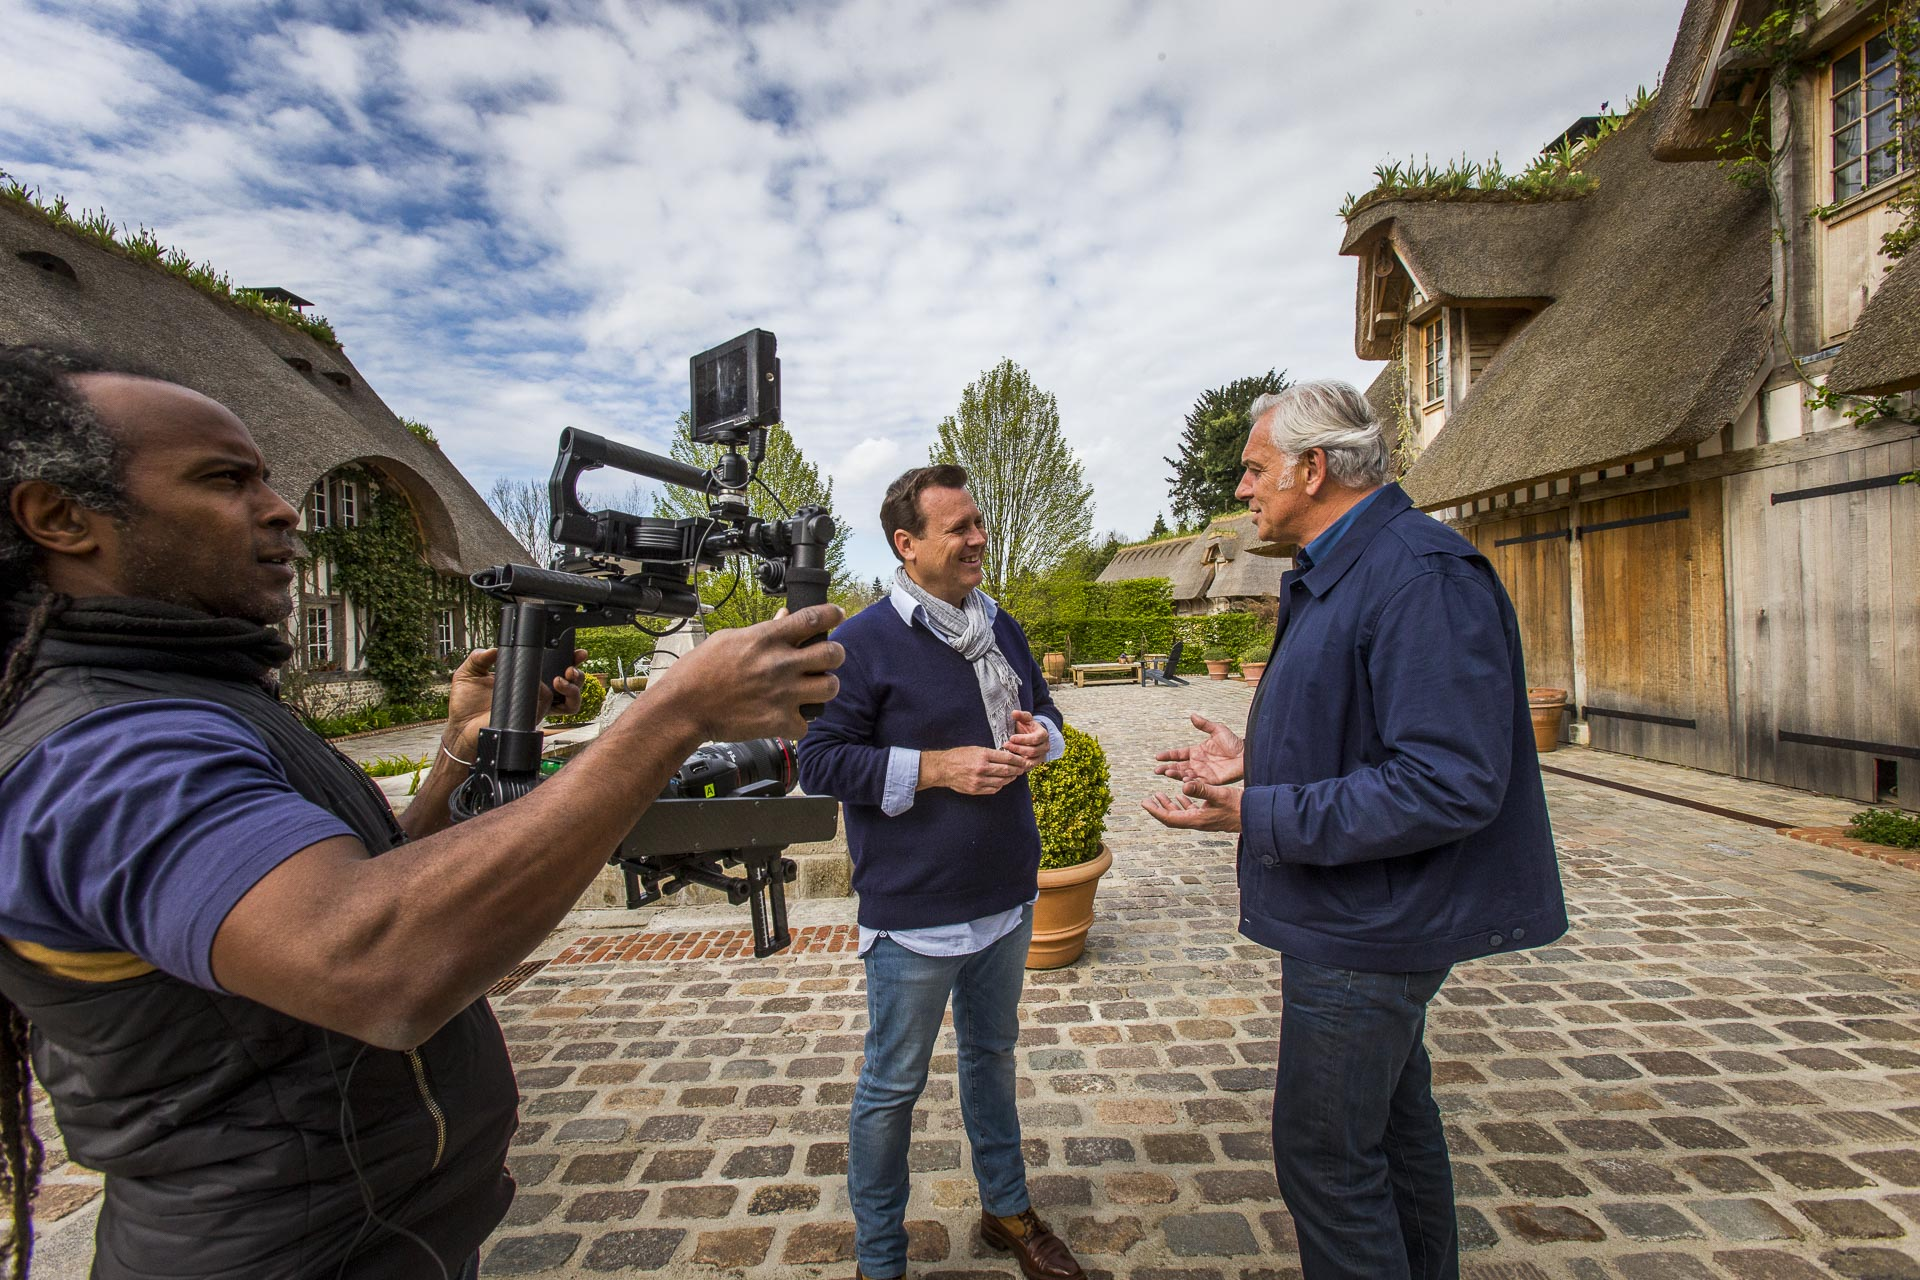 tournage_maison_france_5©stephaneleroy-E61R1645-3.jpg